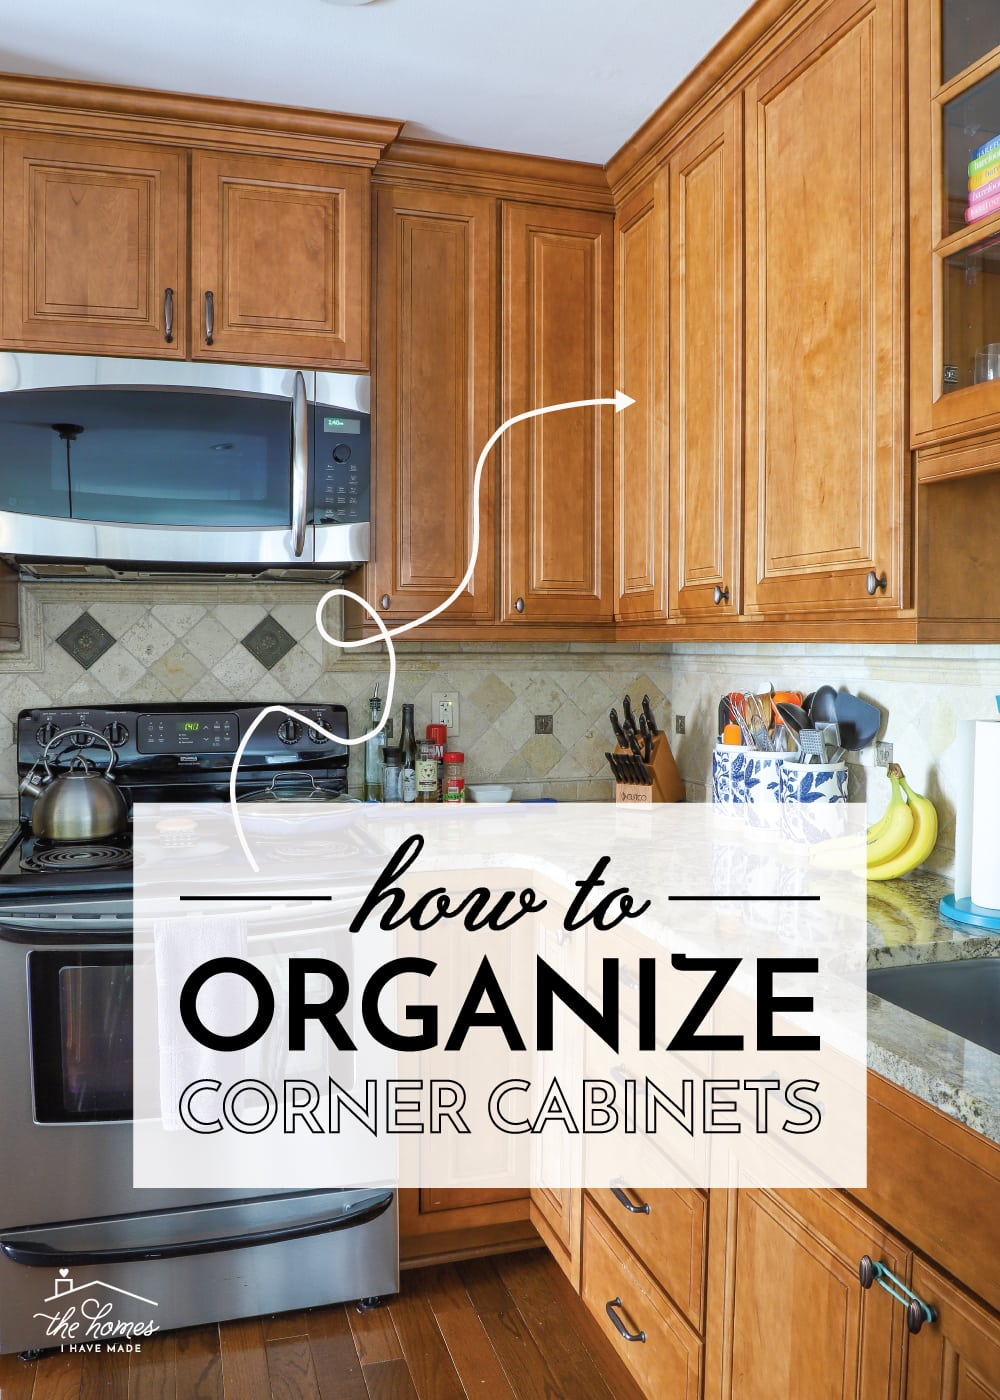 organizing deep corner kitchen cabinets How to Organize Corner Kitchen Cabinets  The Homes I Have Made